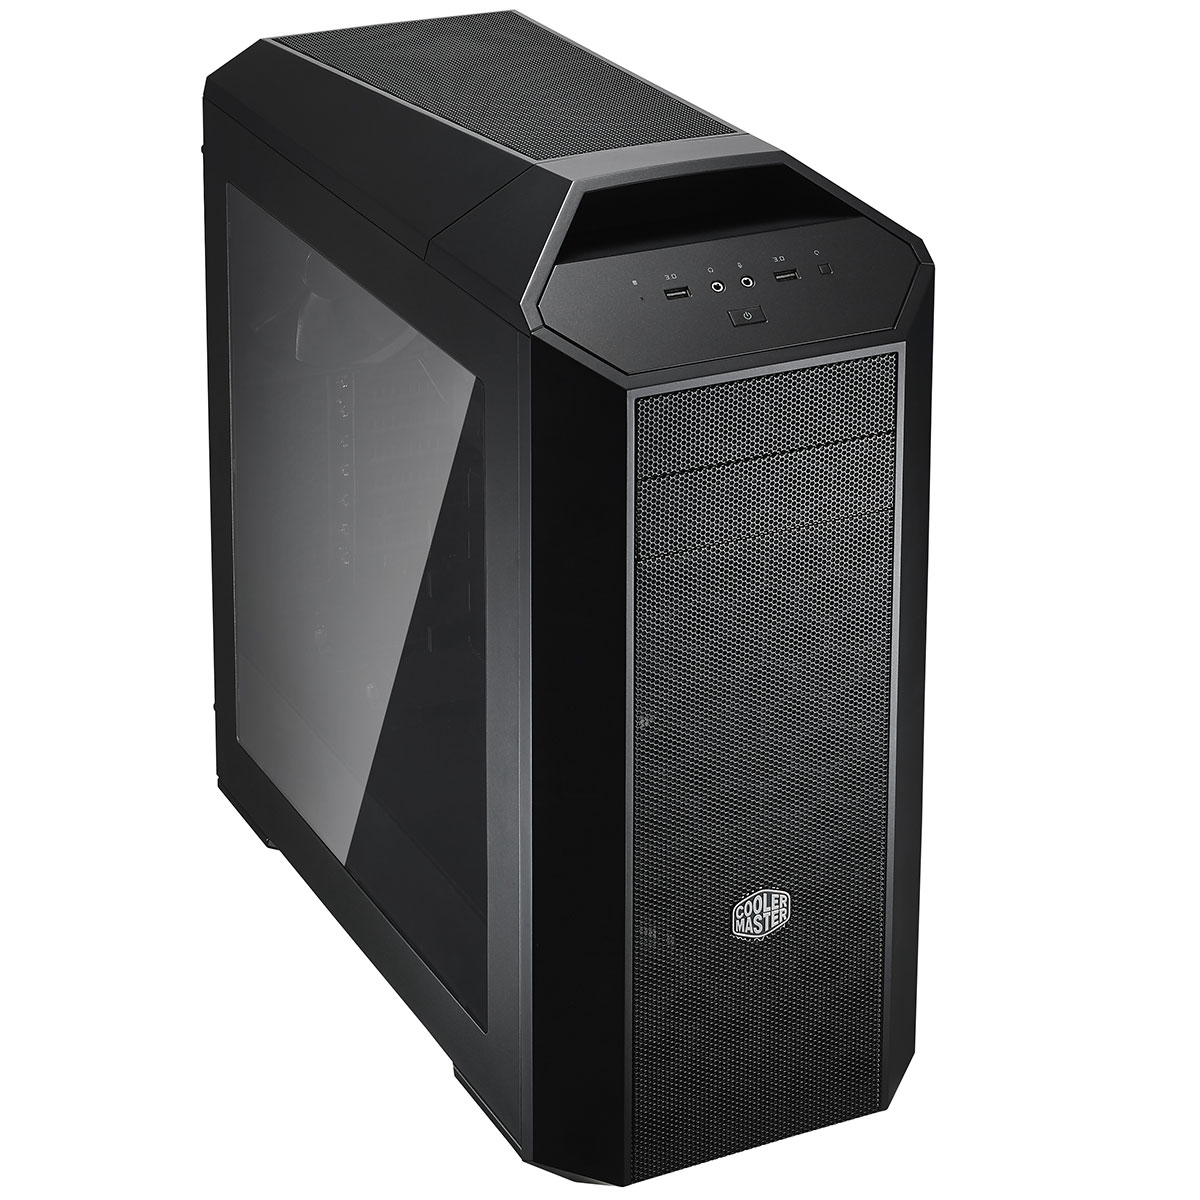 cooler master mastercase pro 5 bo tier pc cooler master ltd sur. Black Bedroom Furniture Sets. Home Design Ideas